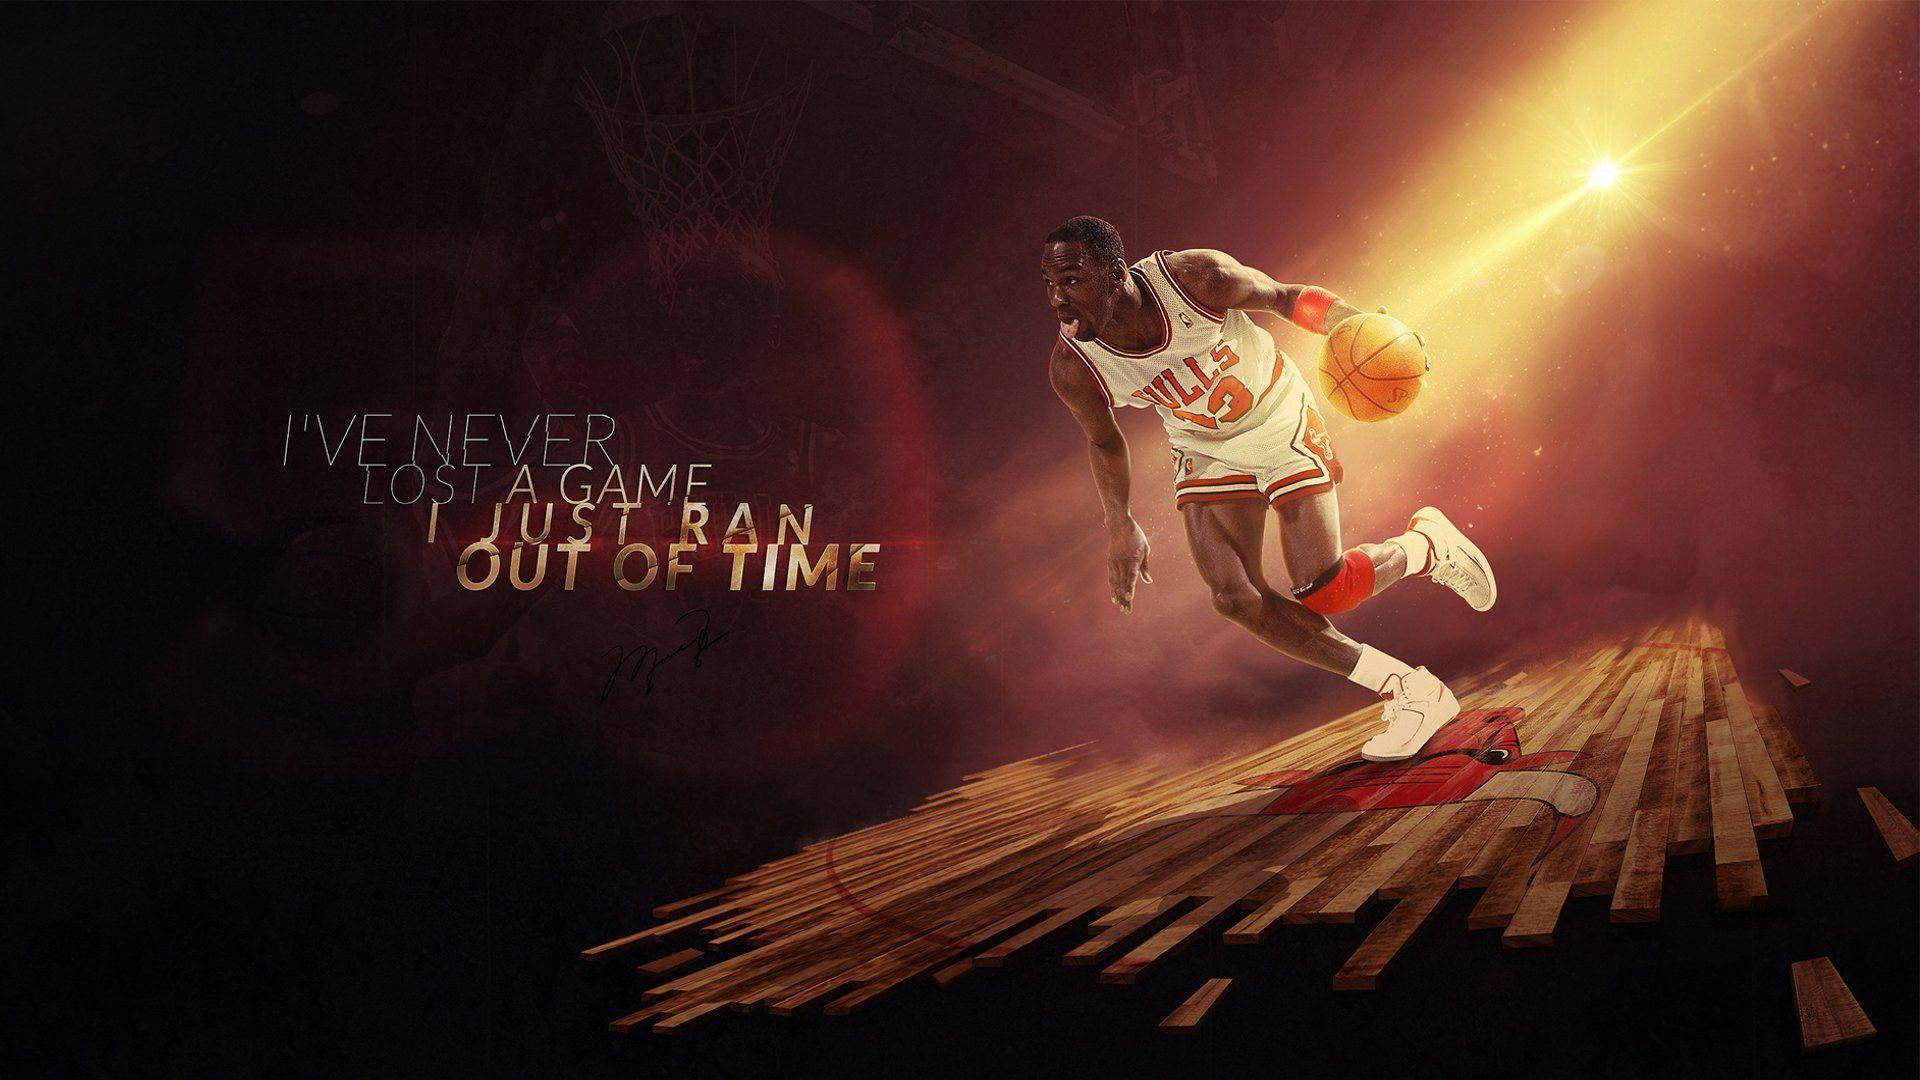 Related Pictures Sports Nba Basketball Michael Jordan 1920x1080